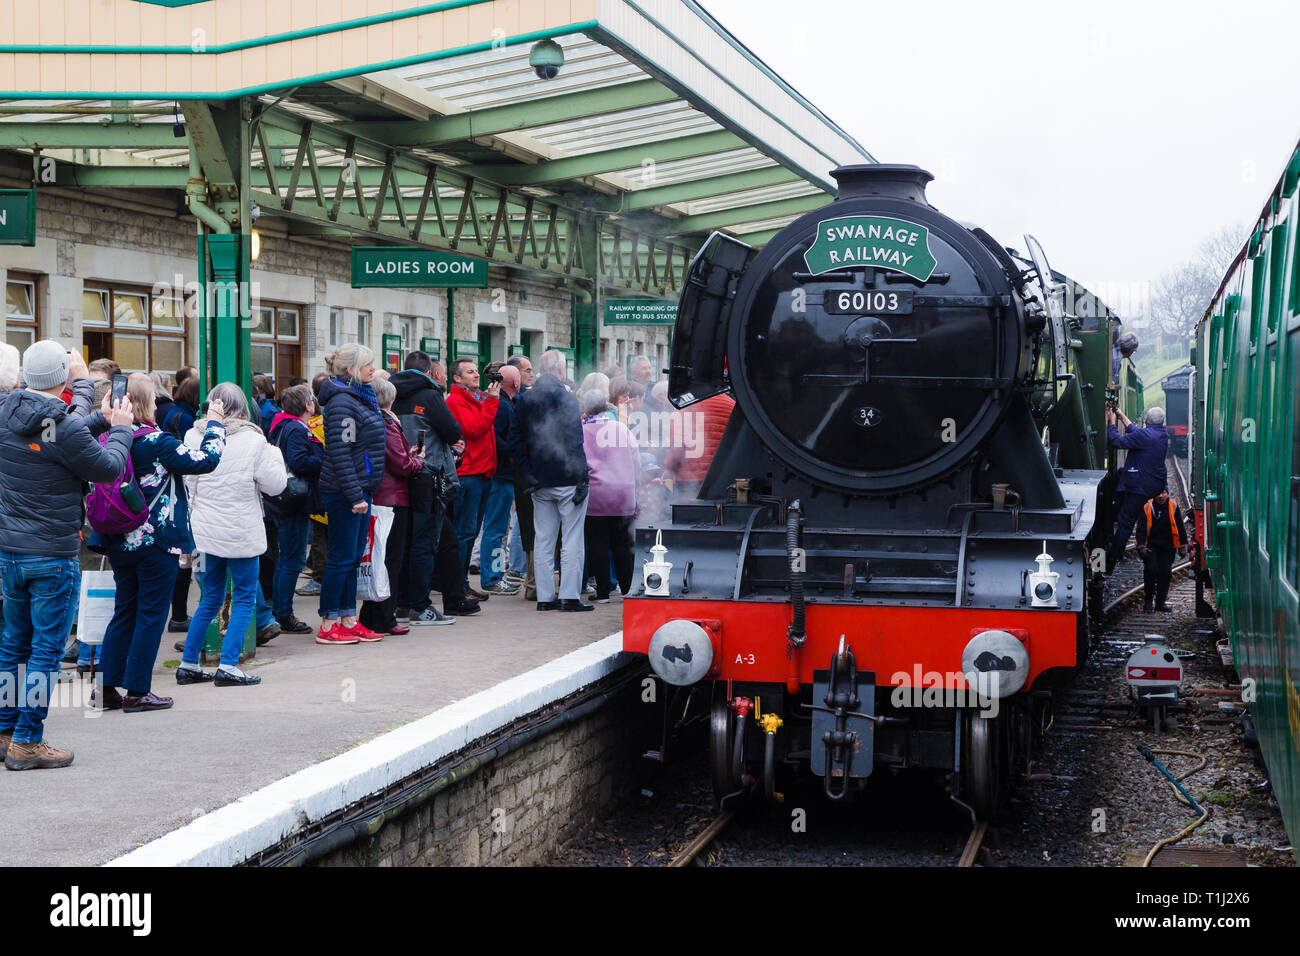 Steam locomotive The Flying Scotsman stops at Swanage Railway station as crowds gather to take photographs. Stock Photo